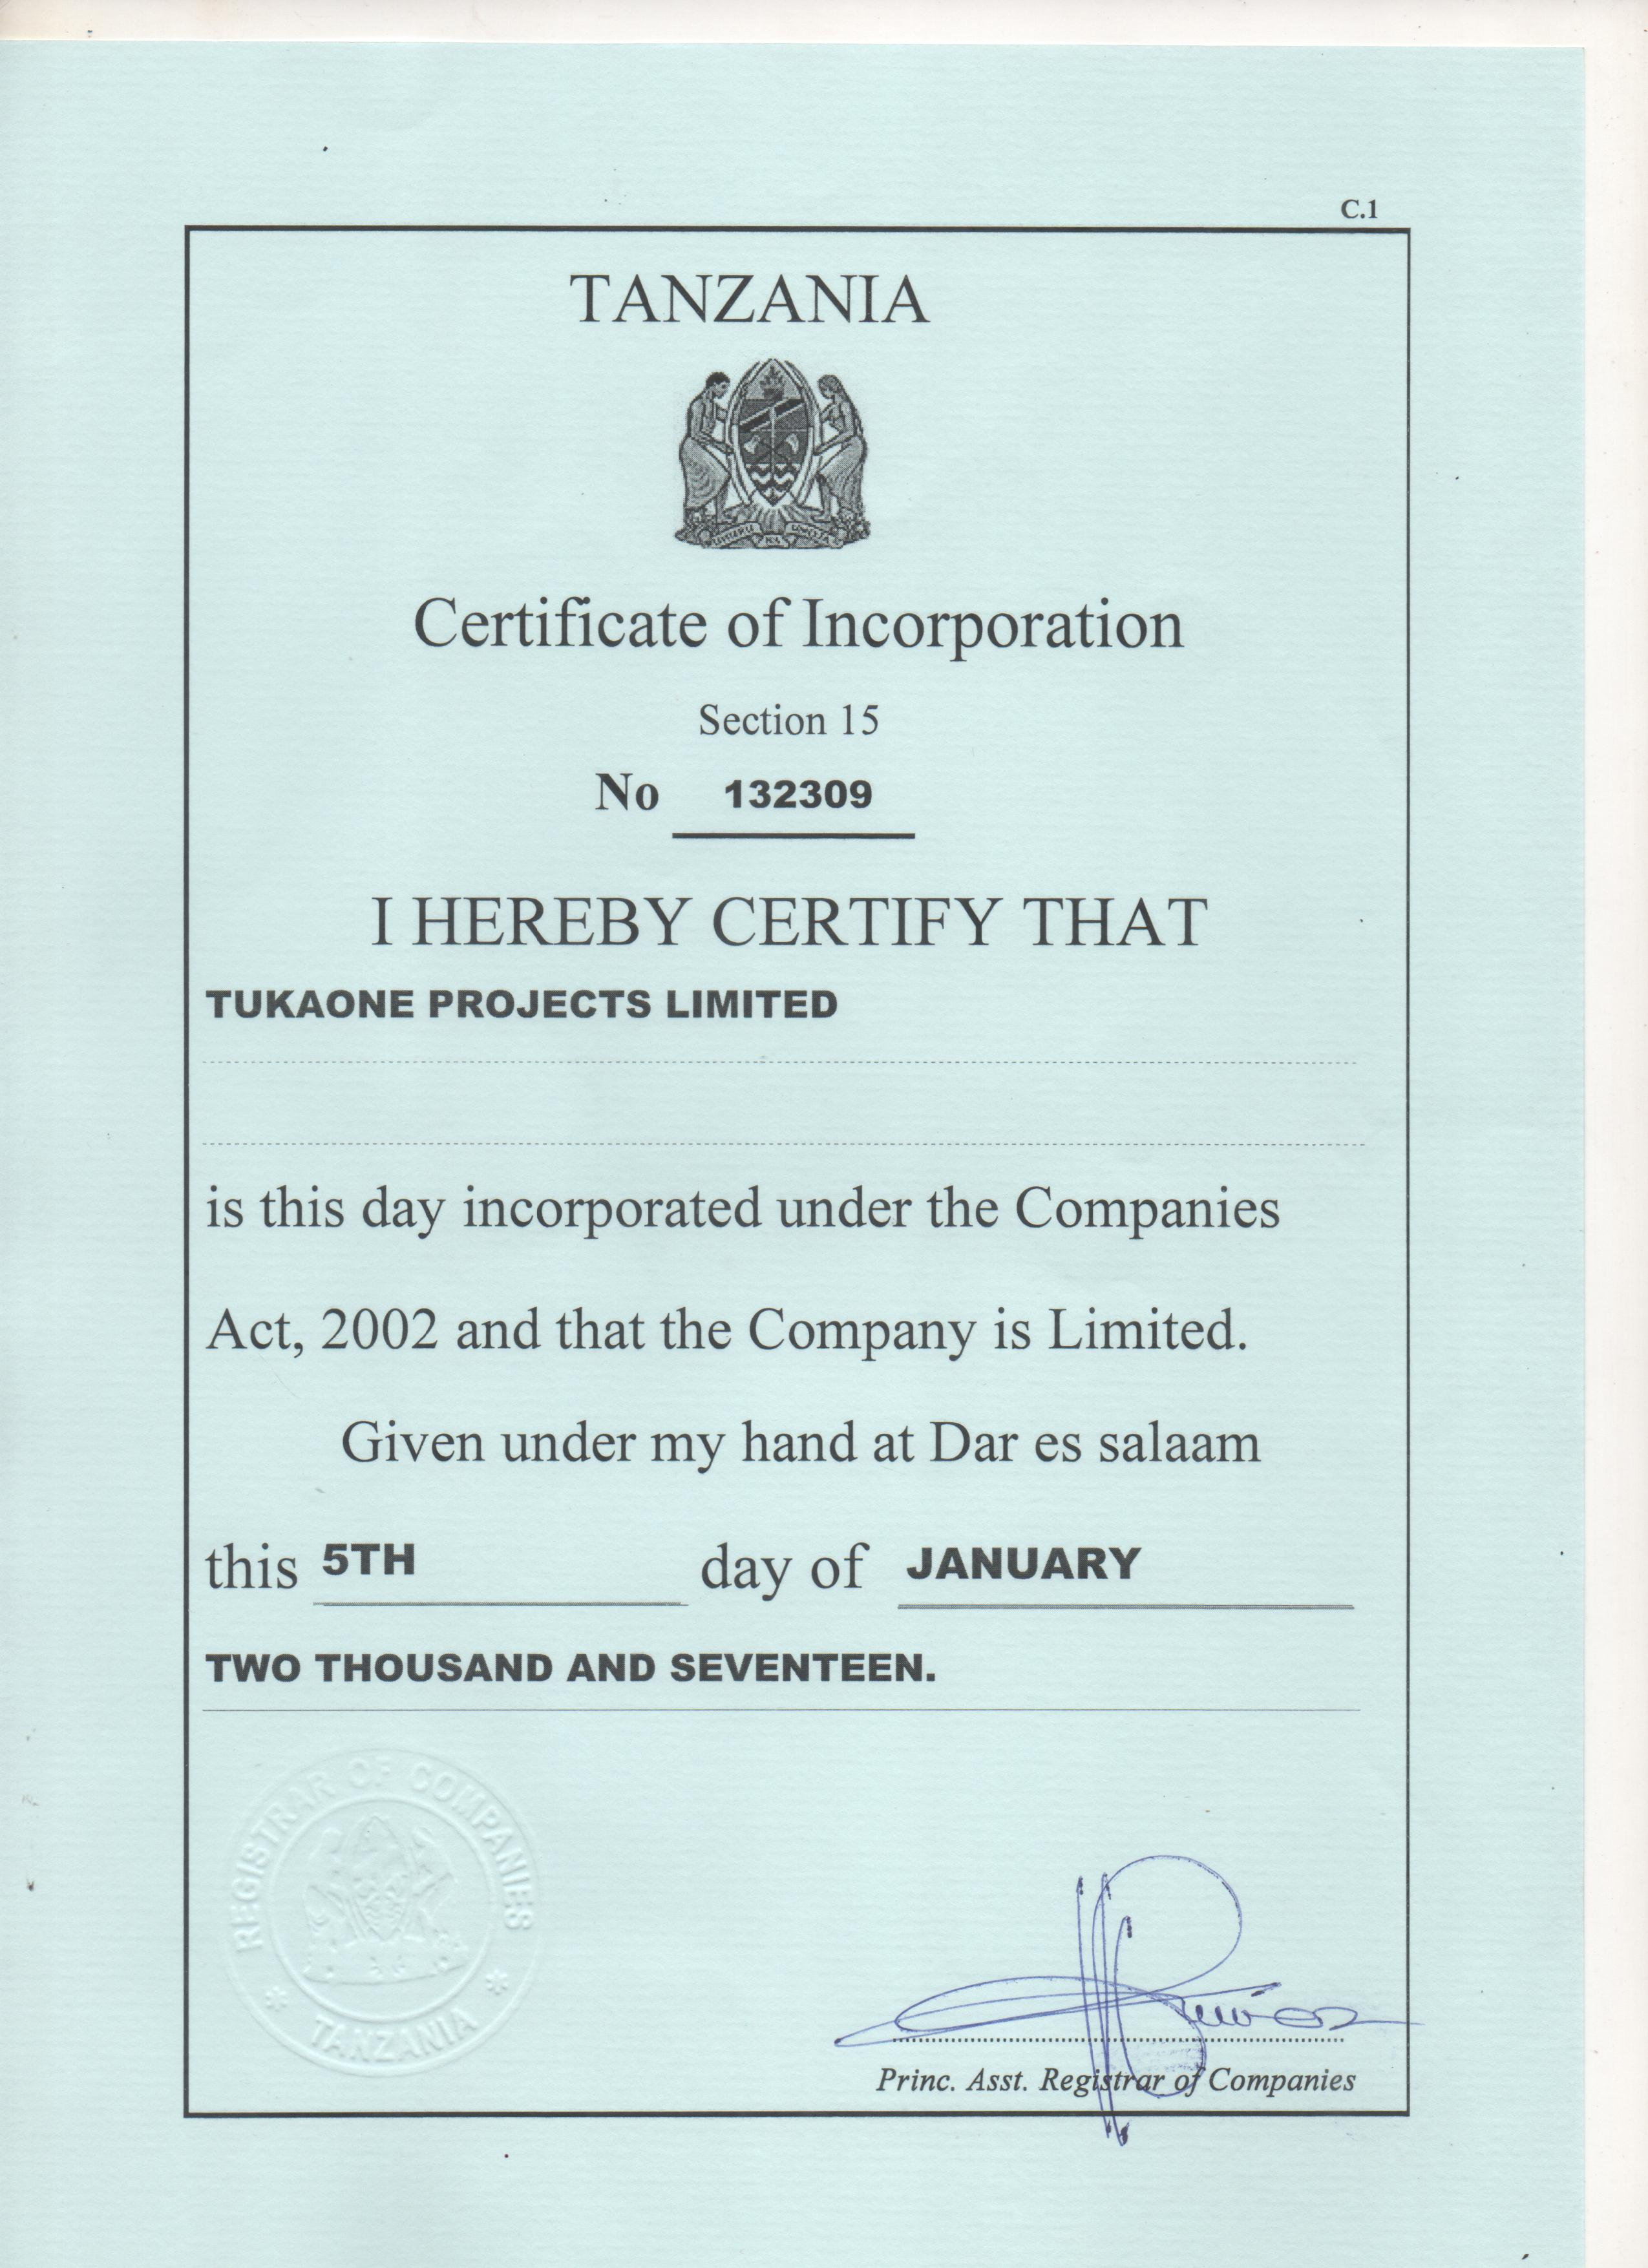 Tukaone projects granted certificate of incorporation walk articles of association and registration certificate from brella a registering body in tanzania have been prepared submitted and approved xflitez Images